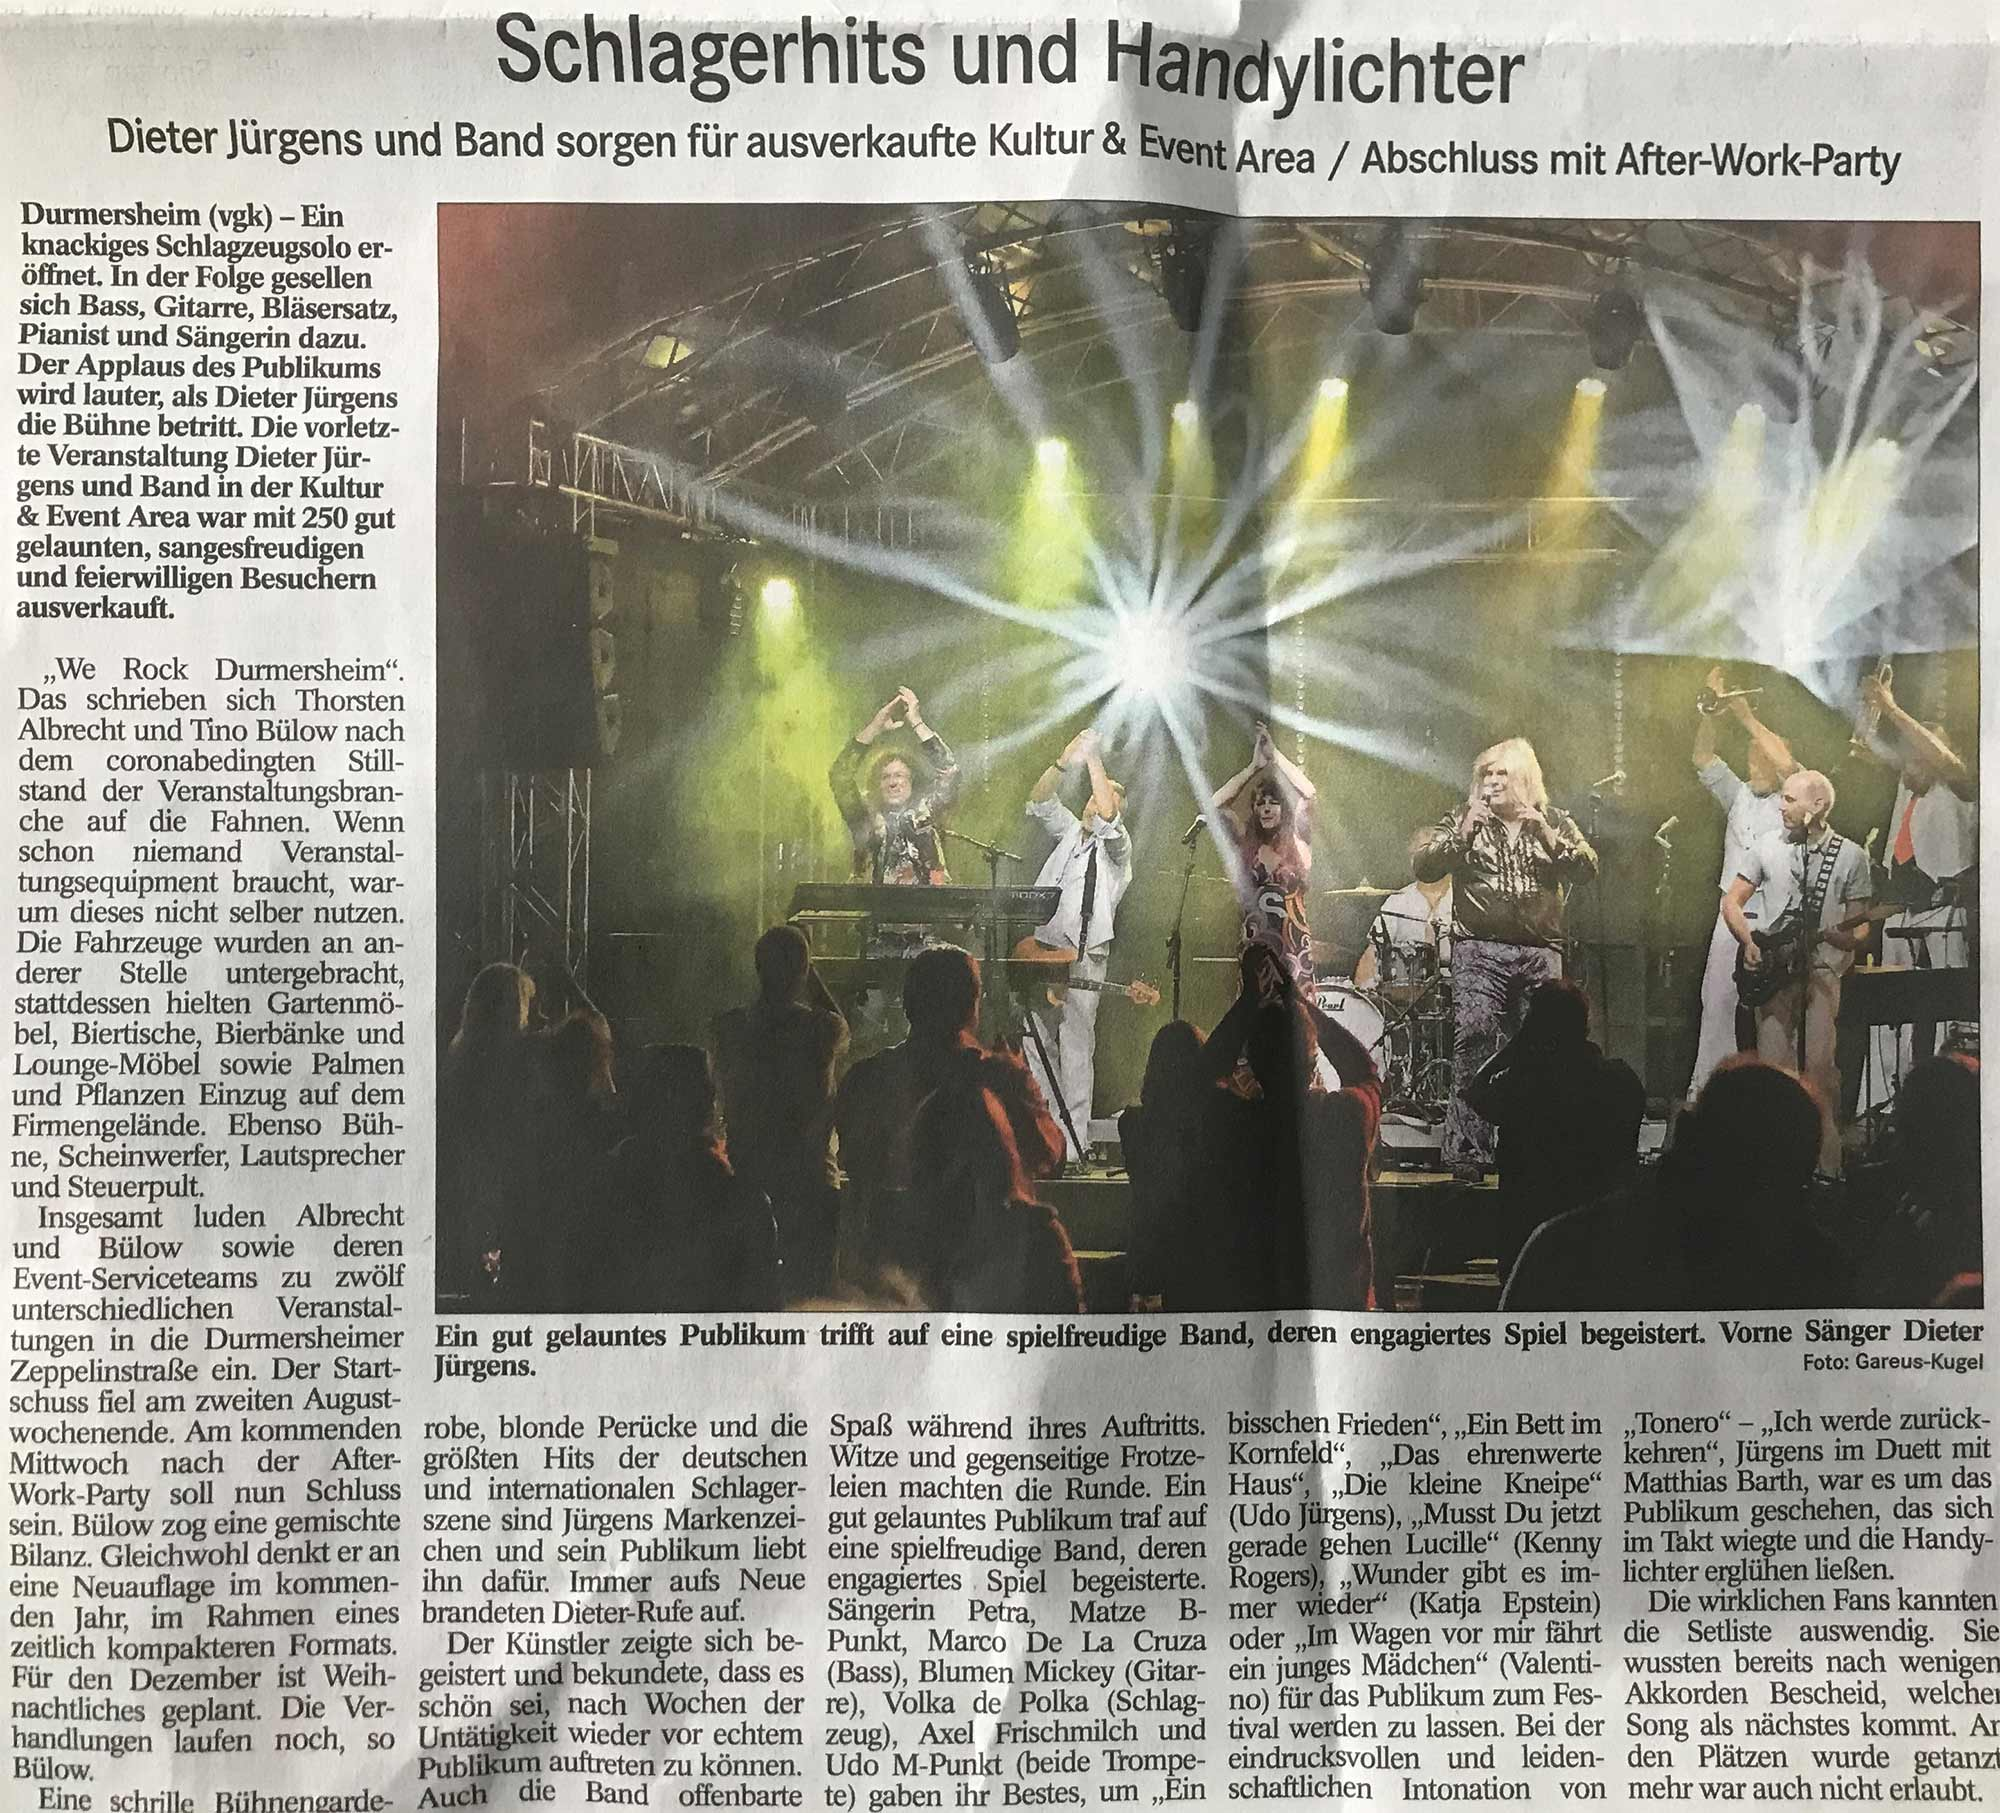 Dieter Jürgens and Band - we-rock-durmersheim - 3p productions